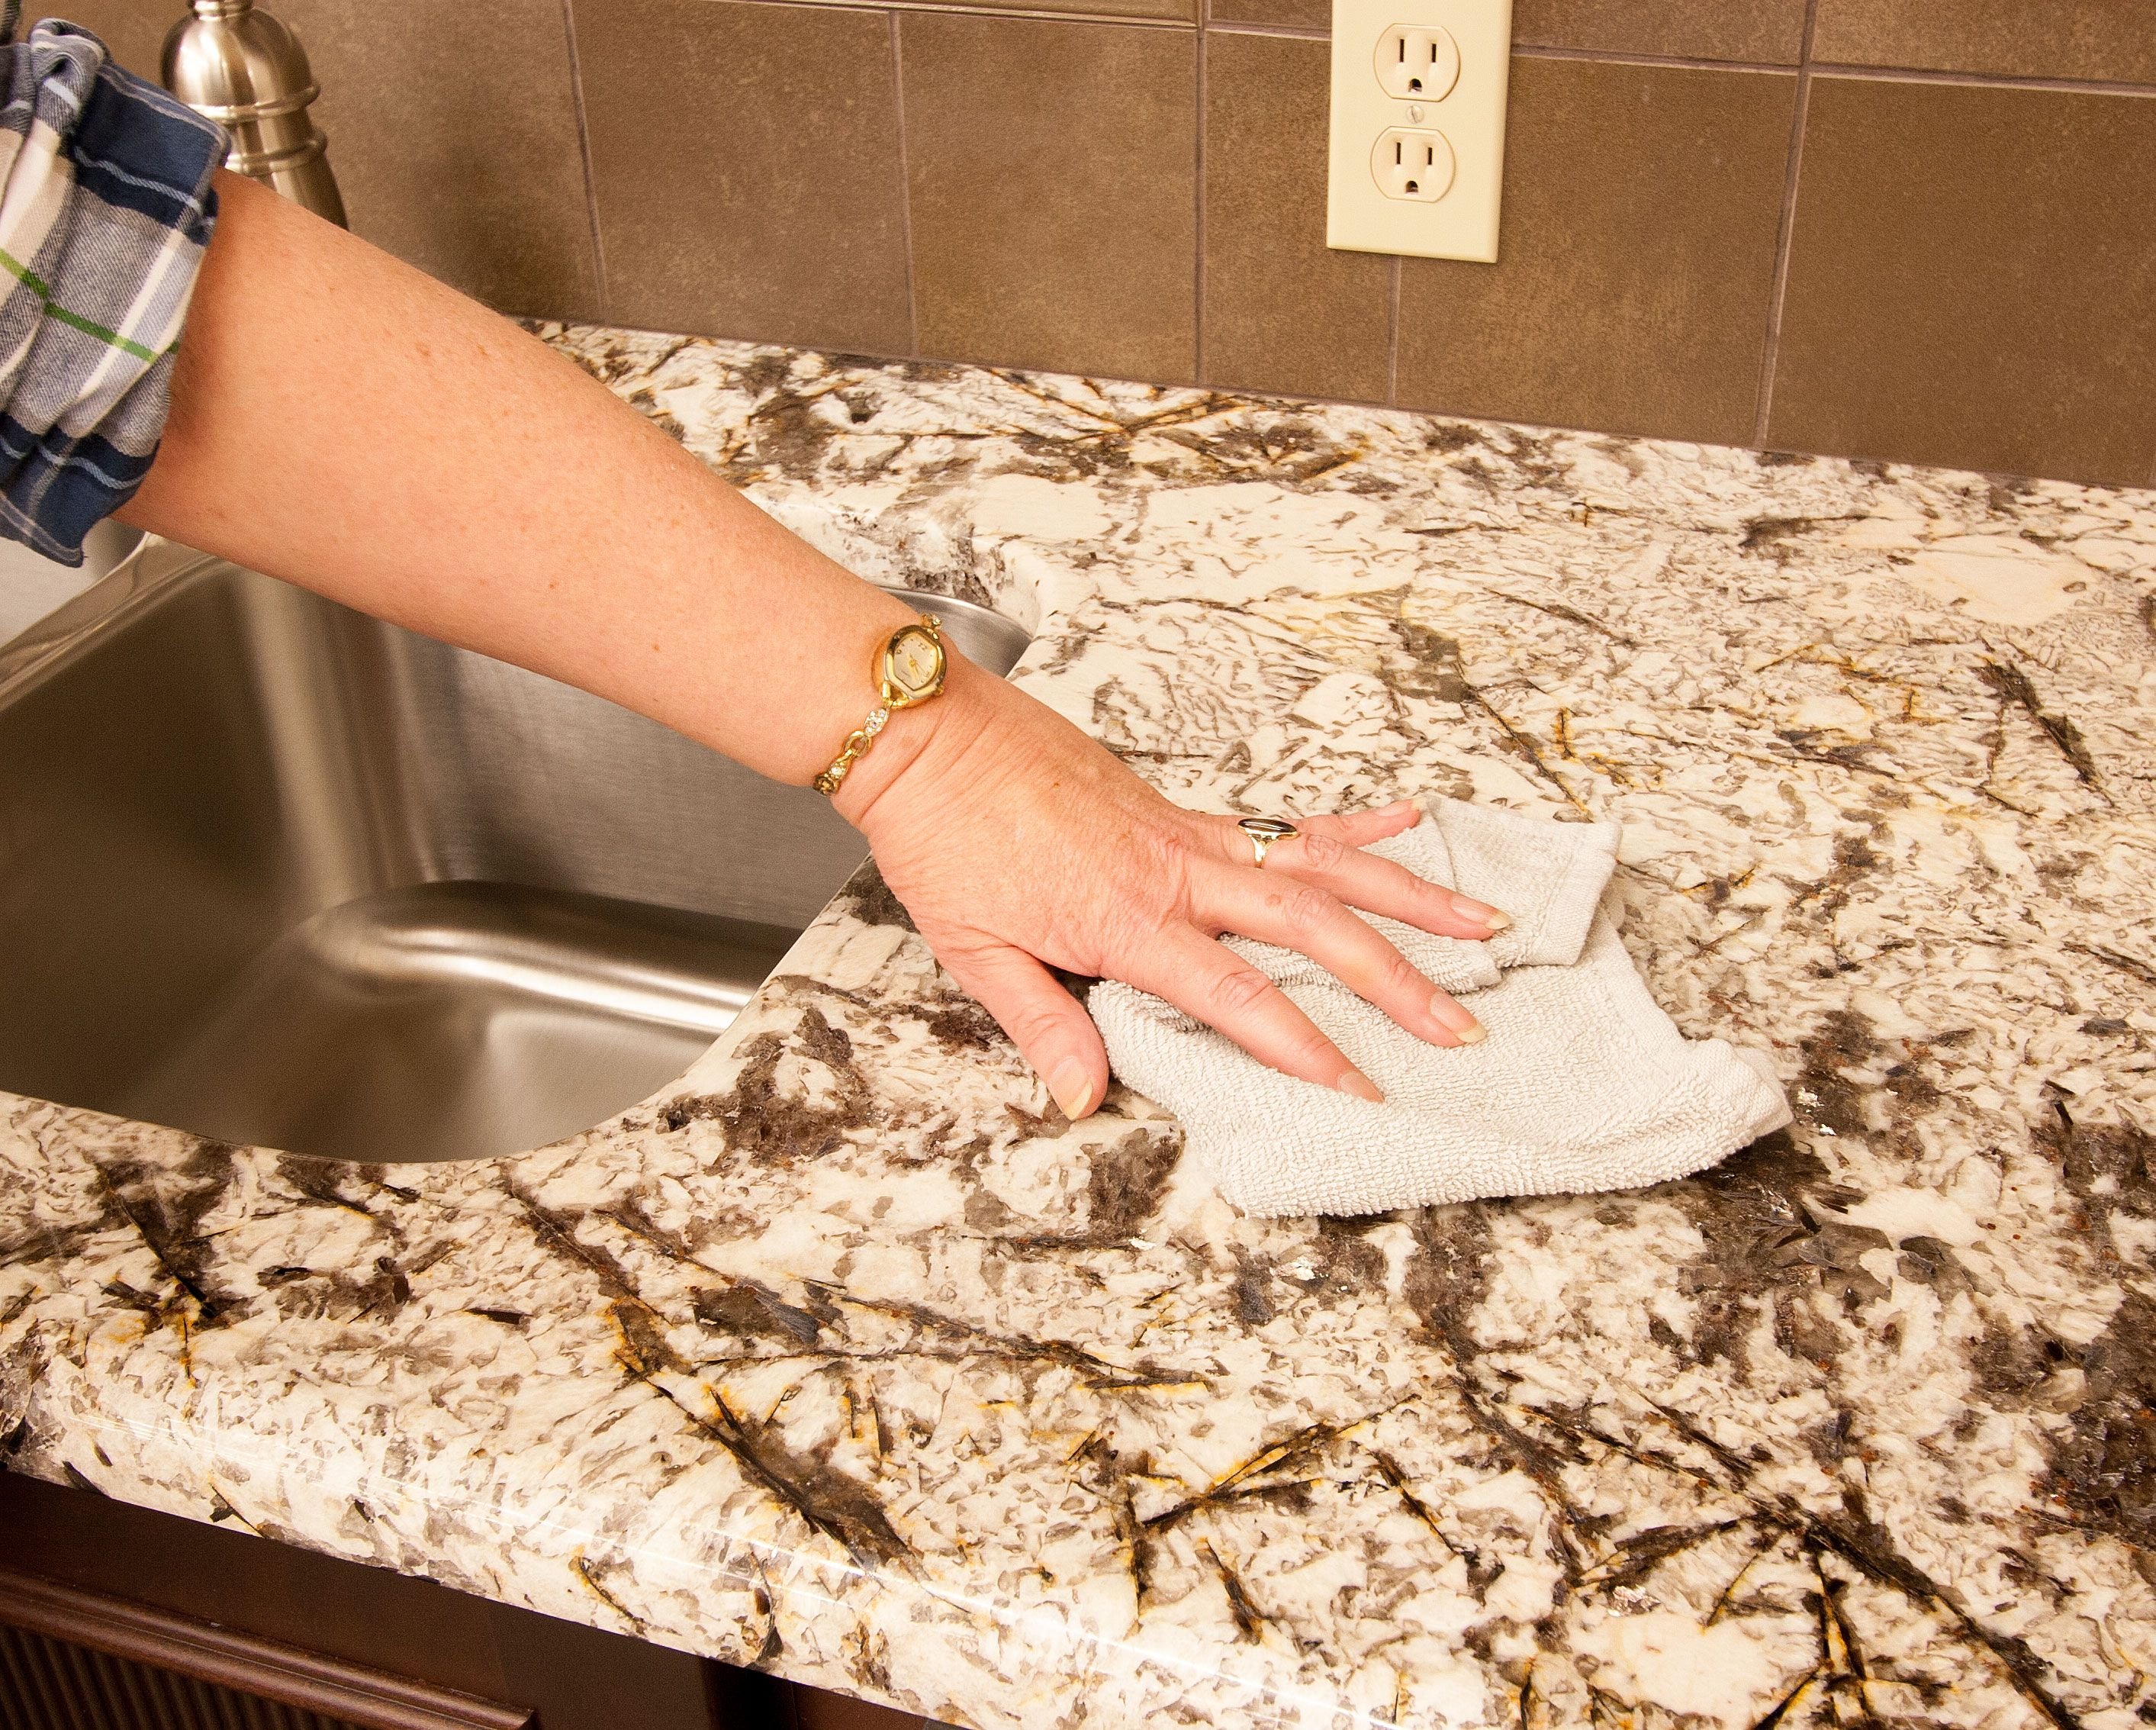 How Do I Care For My New Granite Counter Tops Remember Granite Is A Natural Product Depending On The Color Compo Dishwasher Soap Household Hacks Countertops